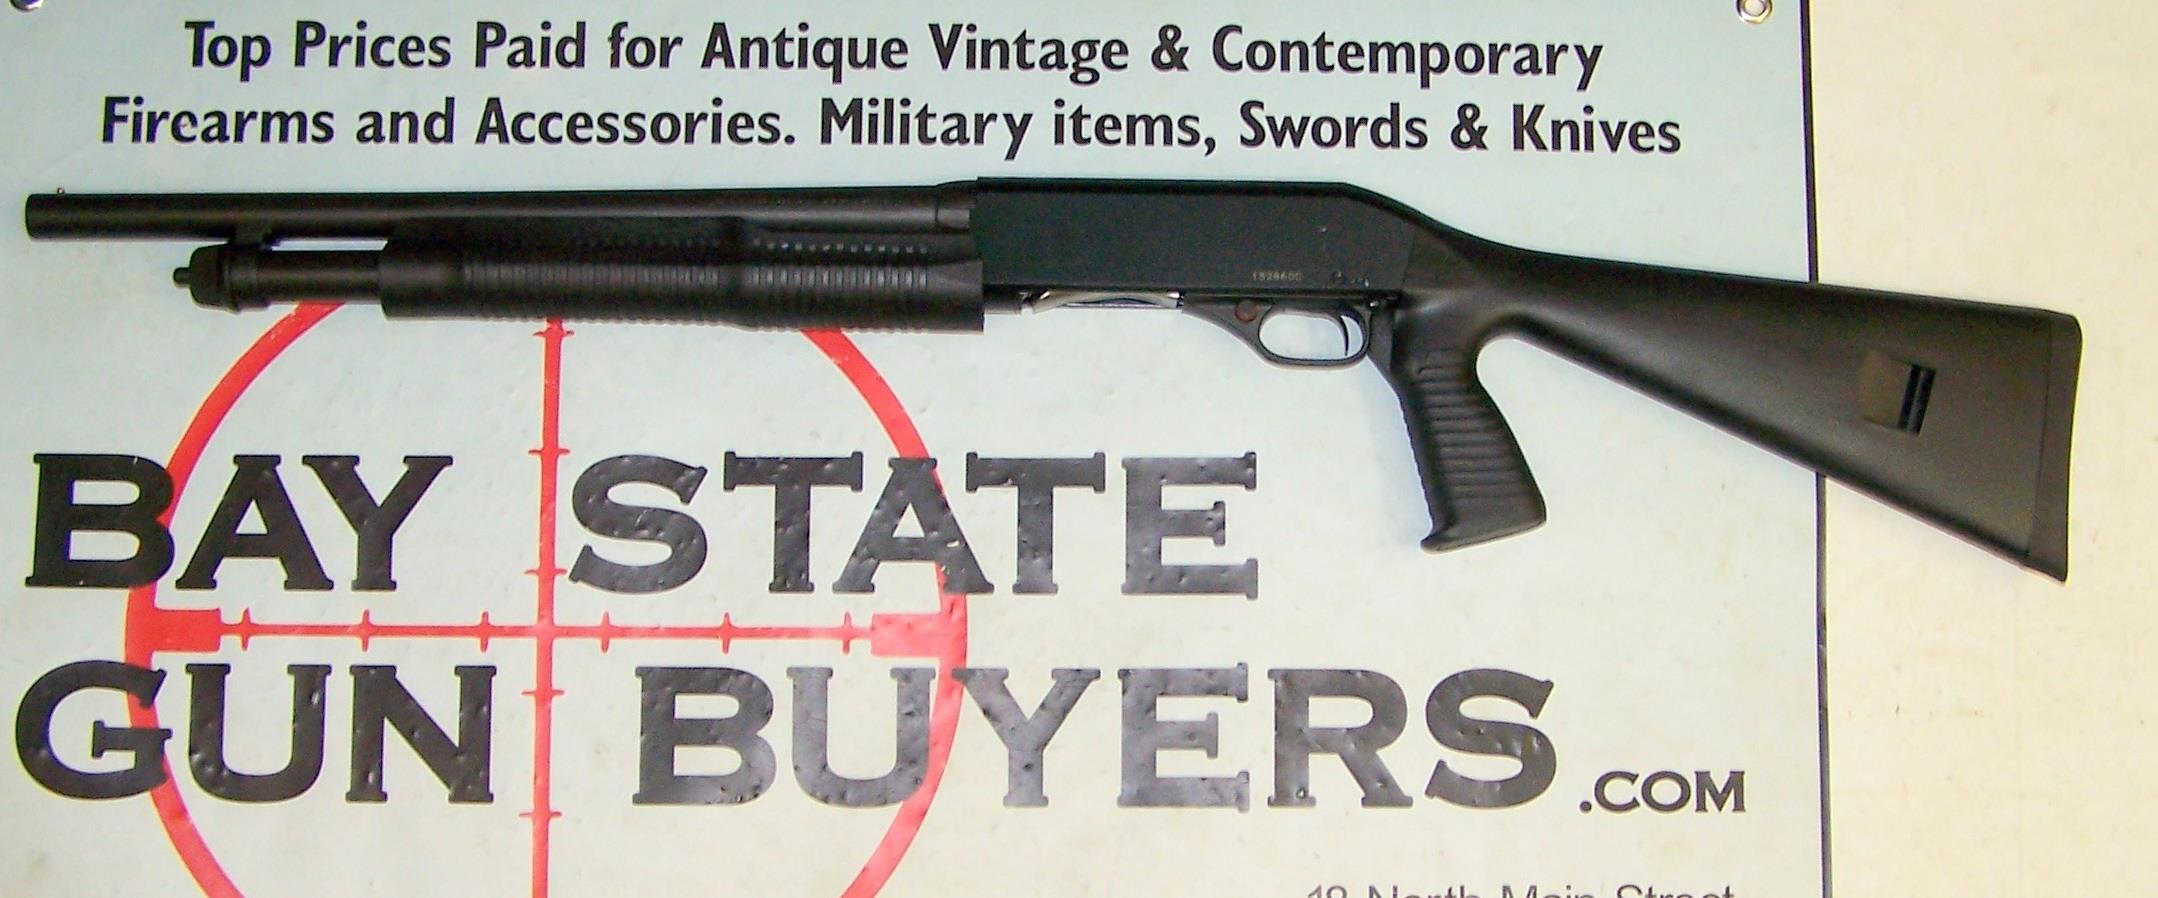 Stevens Model 320 pump action shotgun 12 guage HOME DEFENSE  Guns > Shotguns > Stevens Shotguns